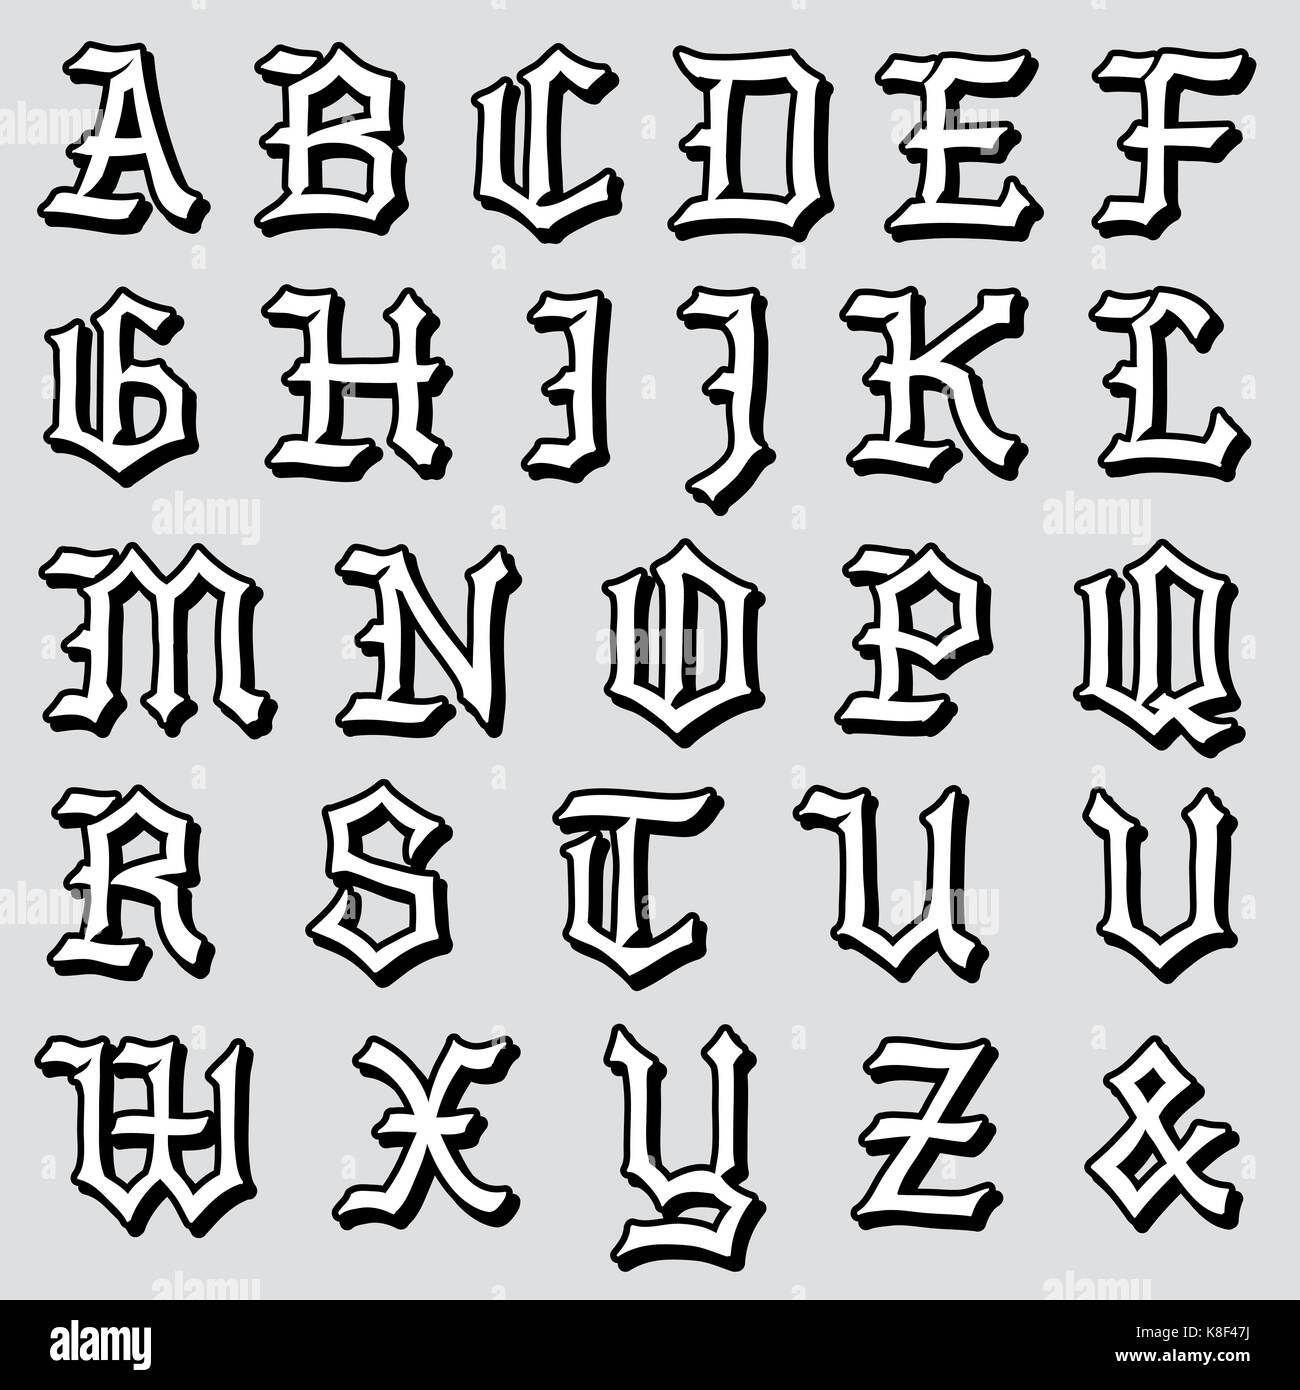 Doodle Vector Illustration Of A Complete Vintage Gothic Alphabet In Caps Written Black